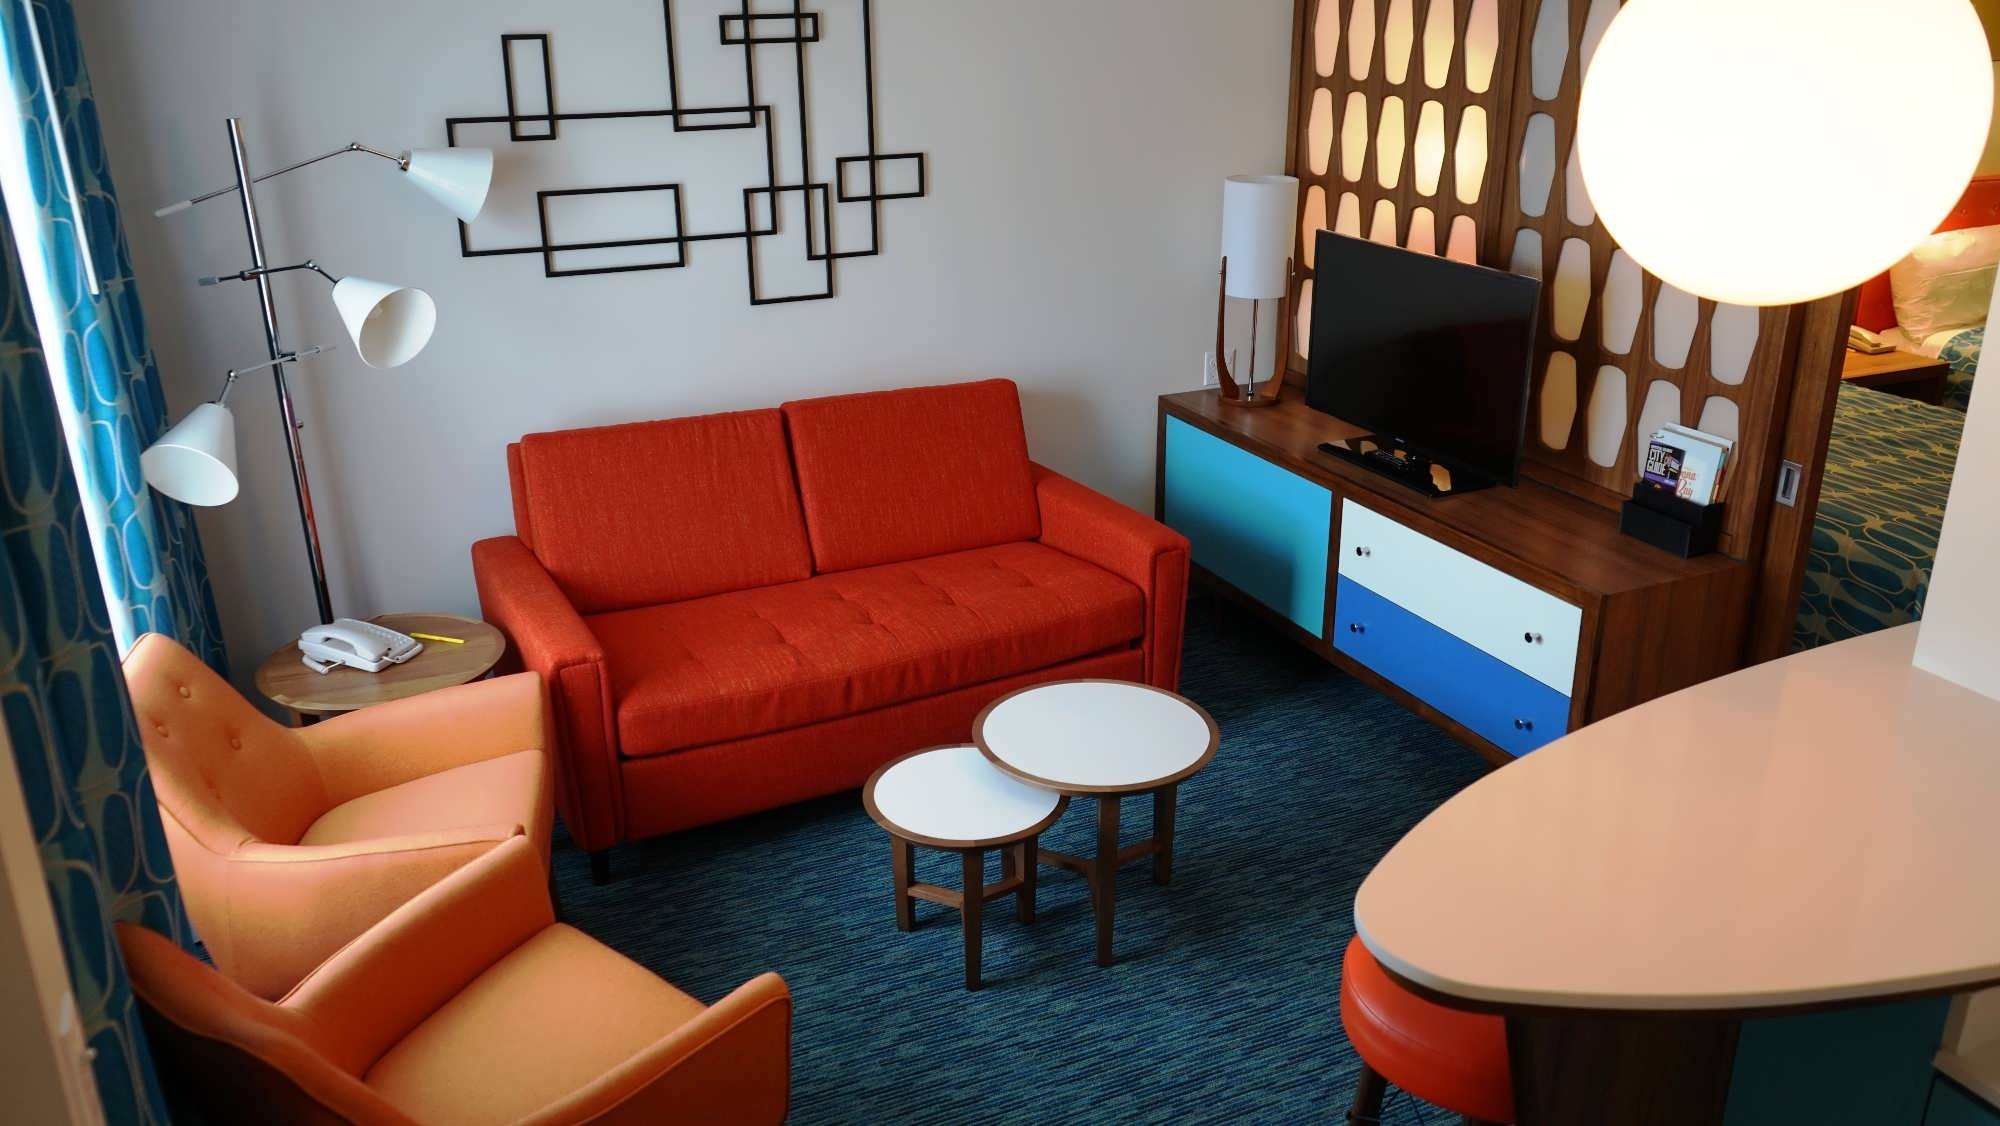 1950's style furniture with a modern flatscreen tv in the living space of a family suite at Cabana Bay